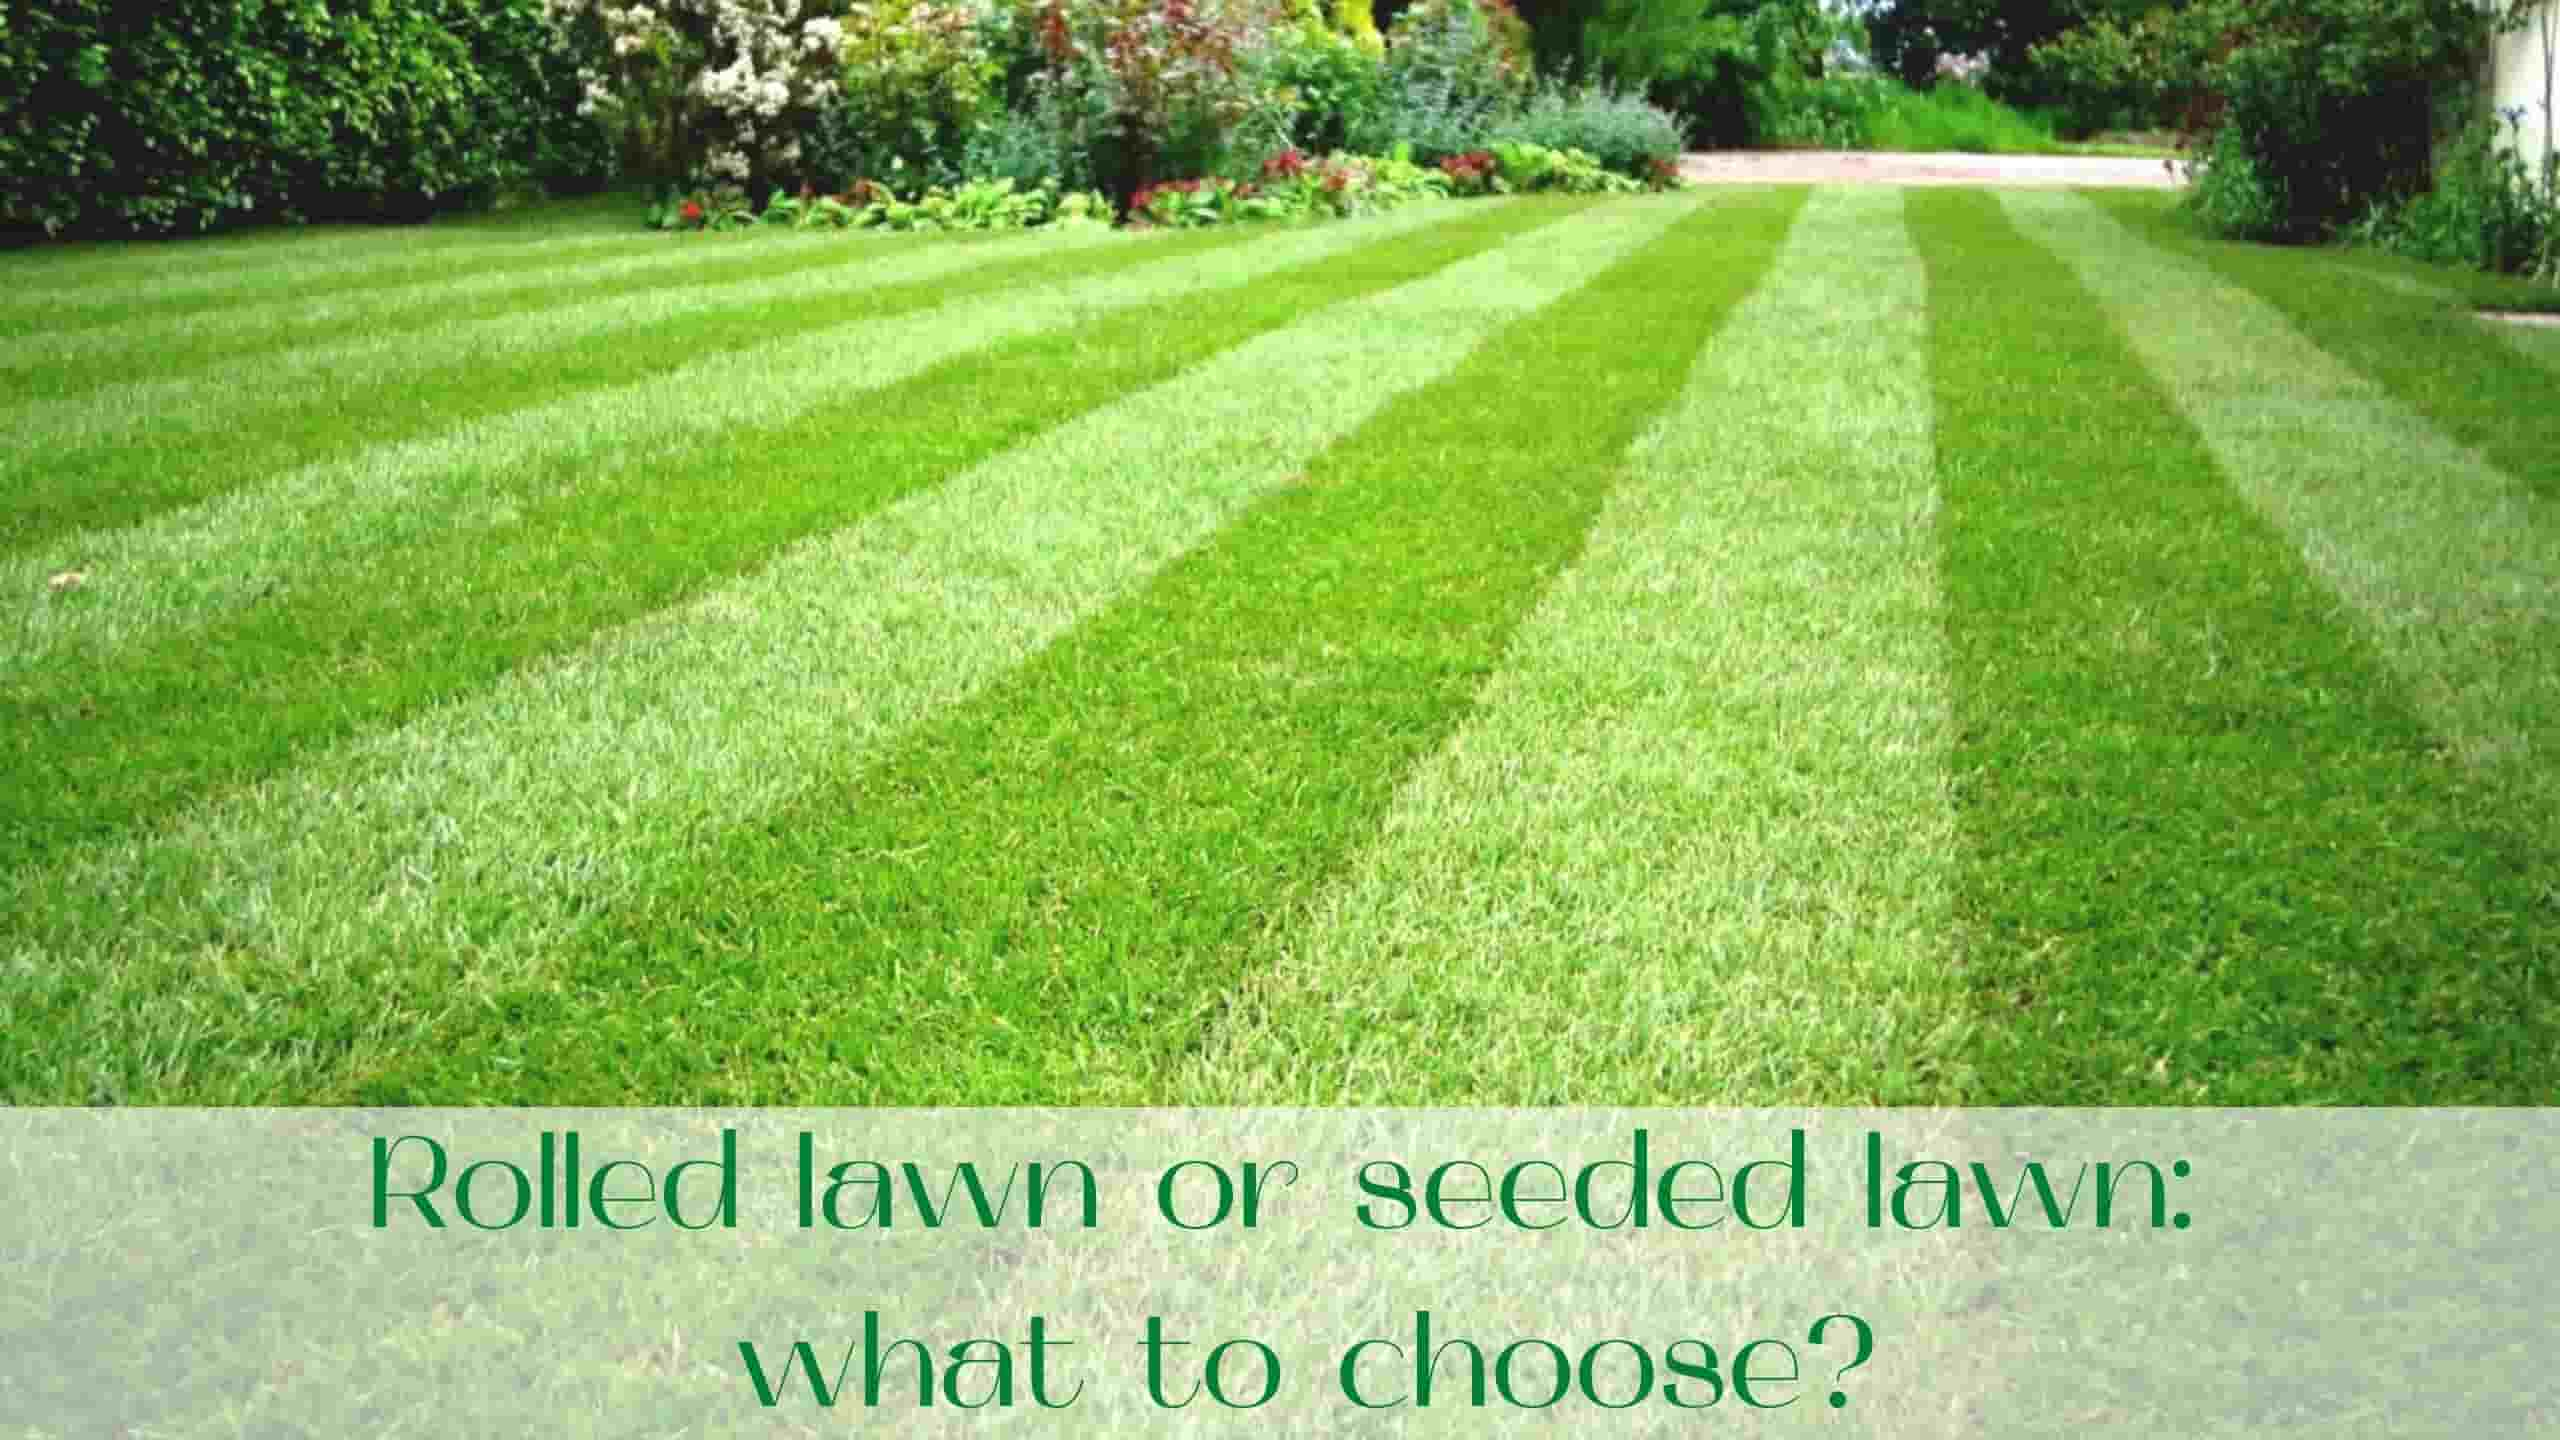 image-Rolled-lawn-or-seeded-lawn-what-to-choose